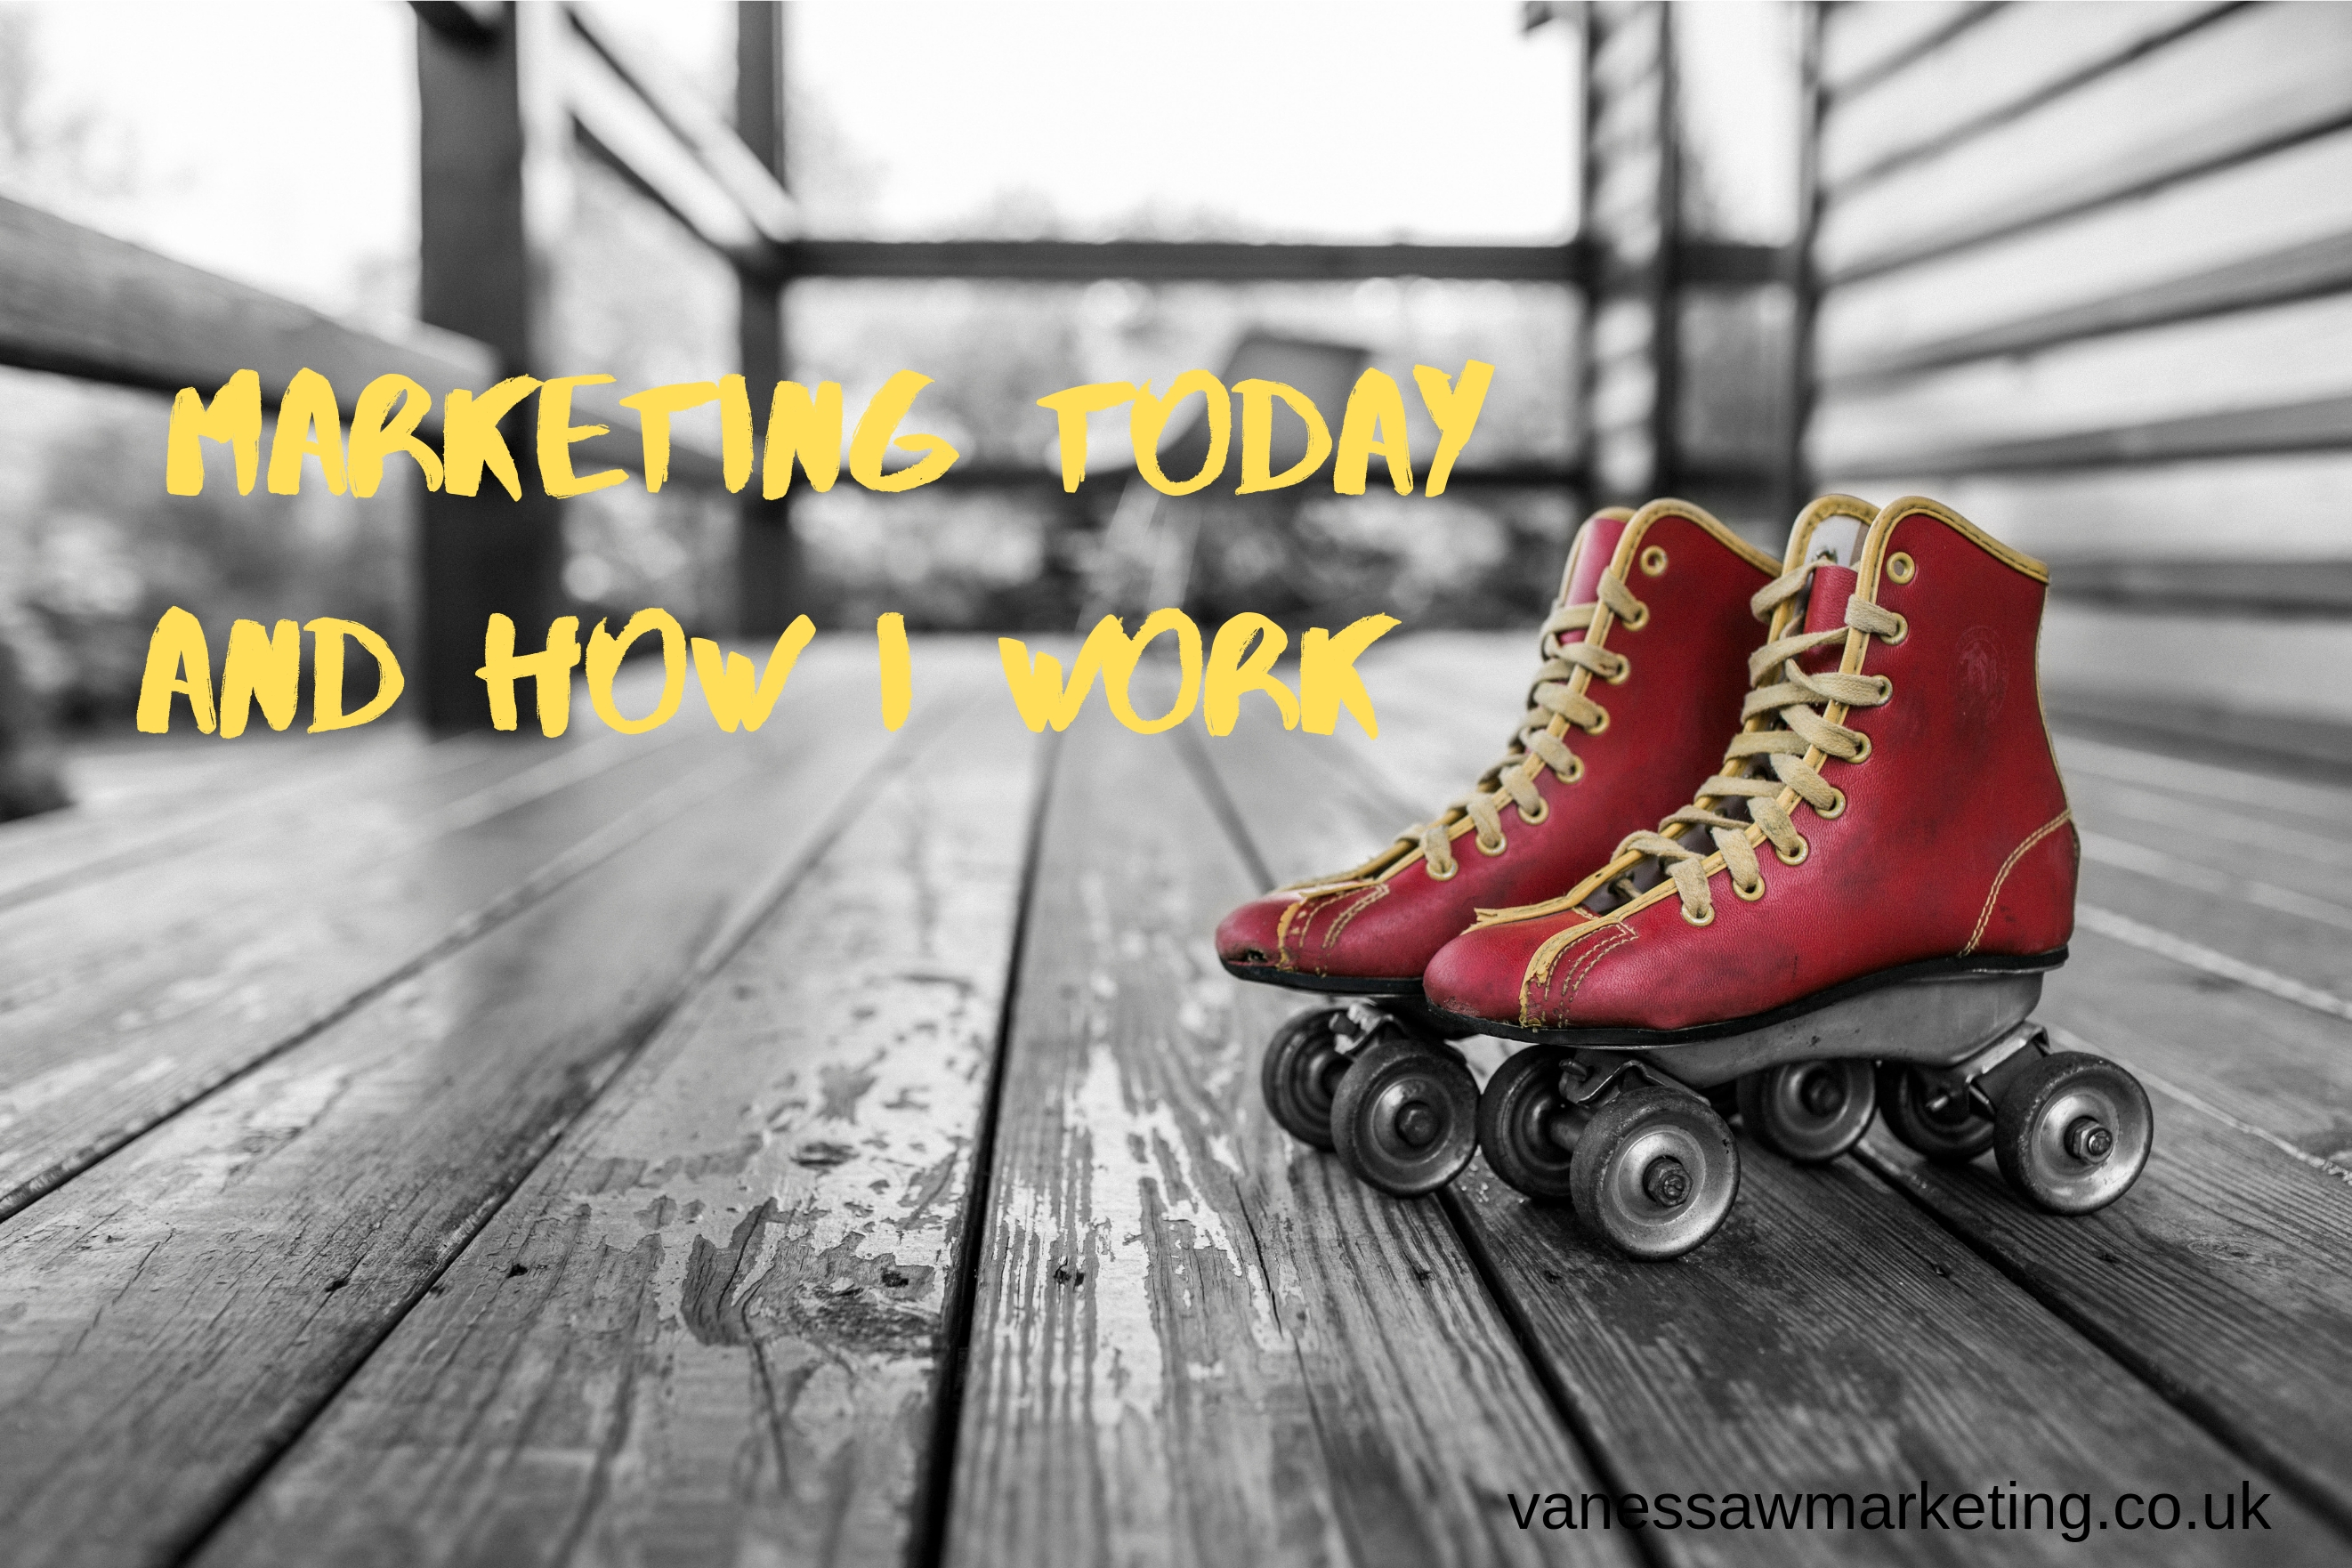 Marketing today and how I work